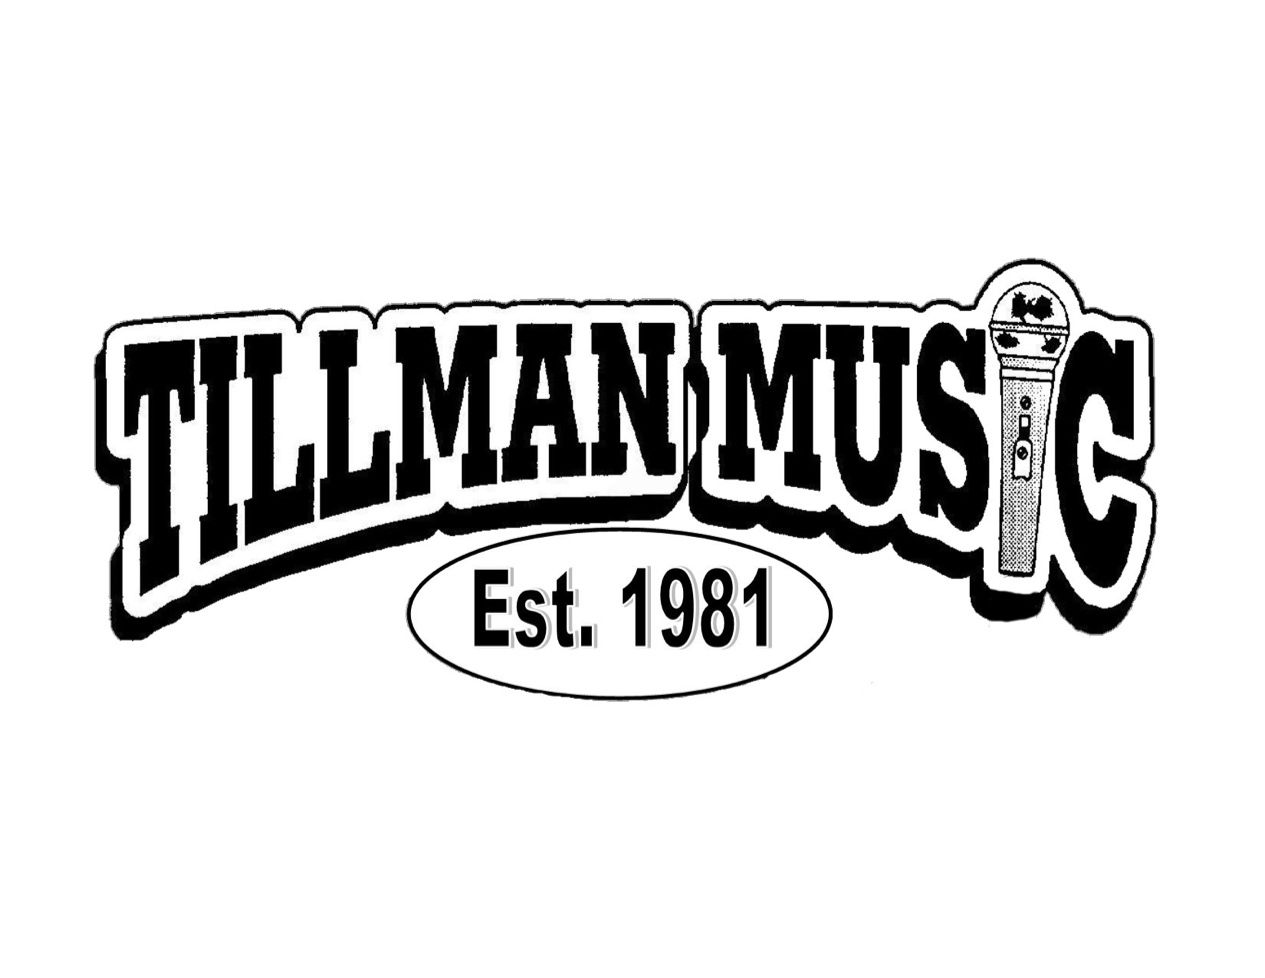 Tillman Music in Rock Hill is actively seeking qualified